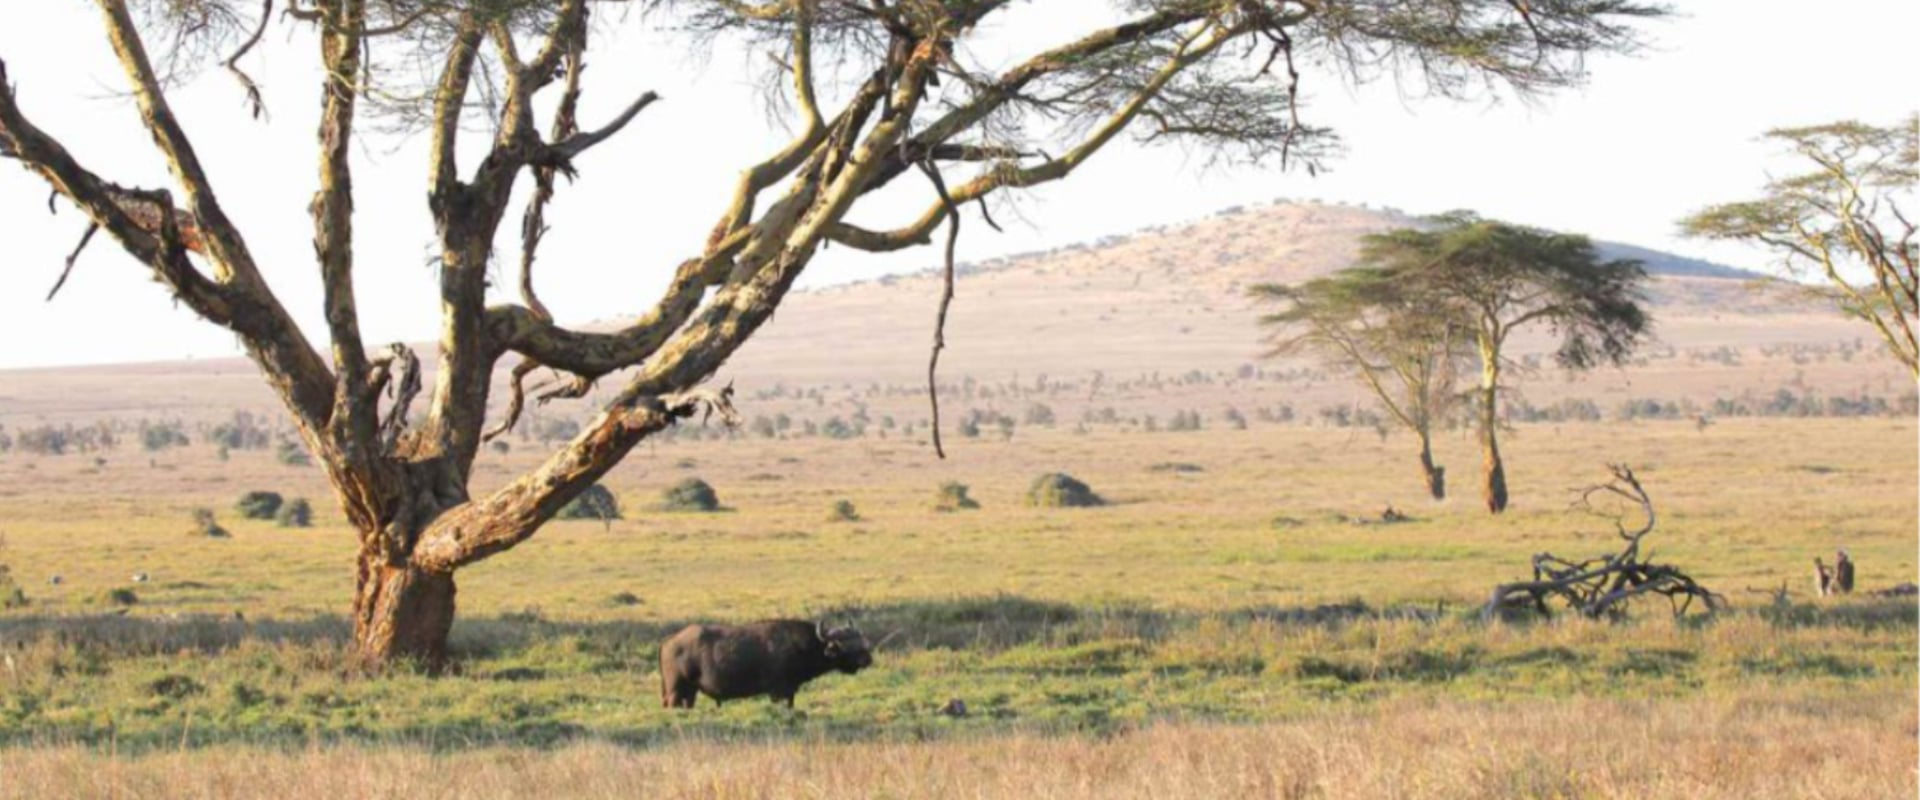 Walking safaris at your own leisurely pace